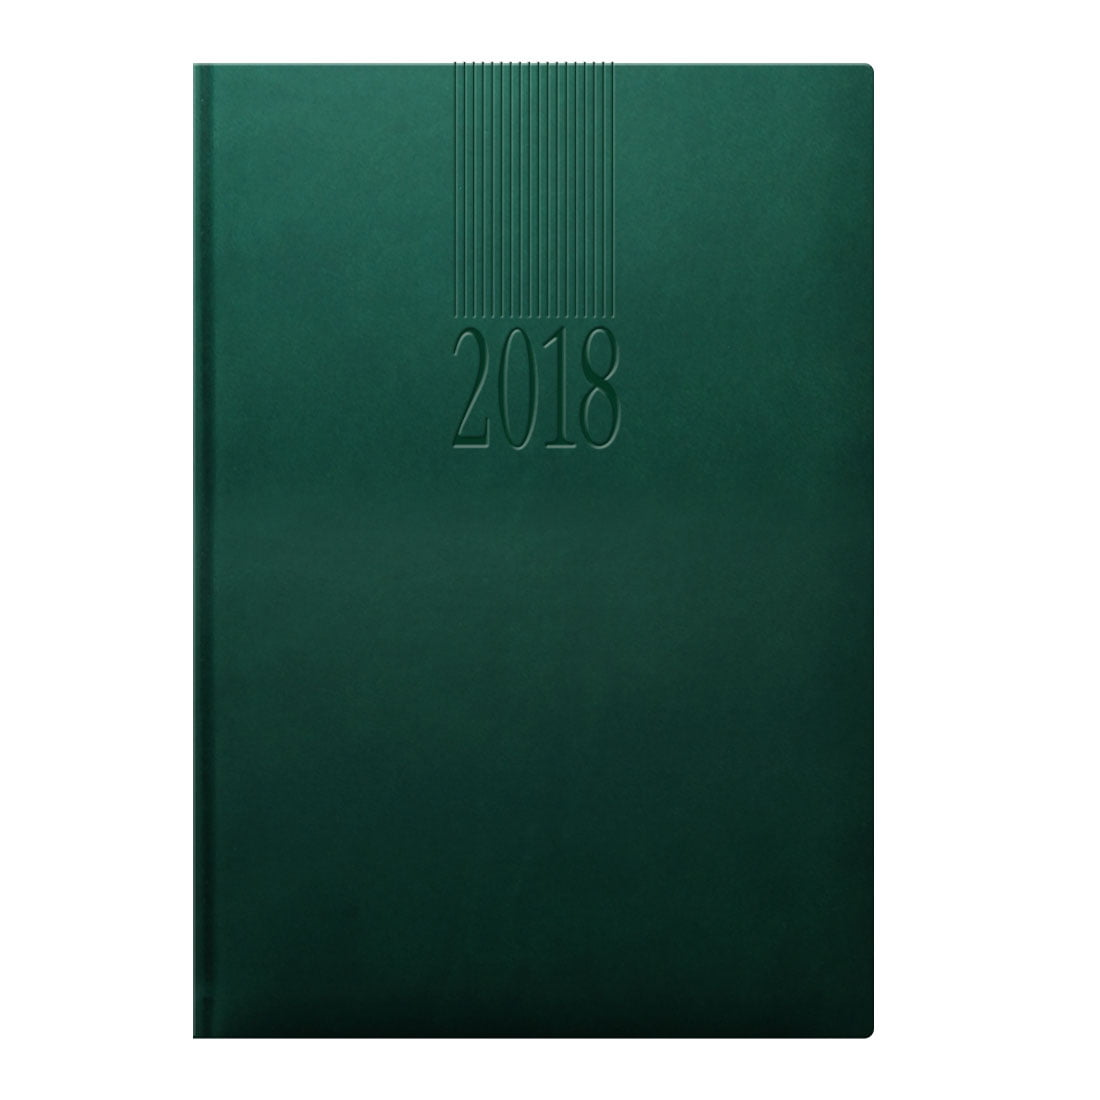 Tuscon A5 diary in green with a padded cover, white pages and blind embossed date.